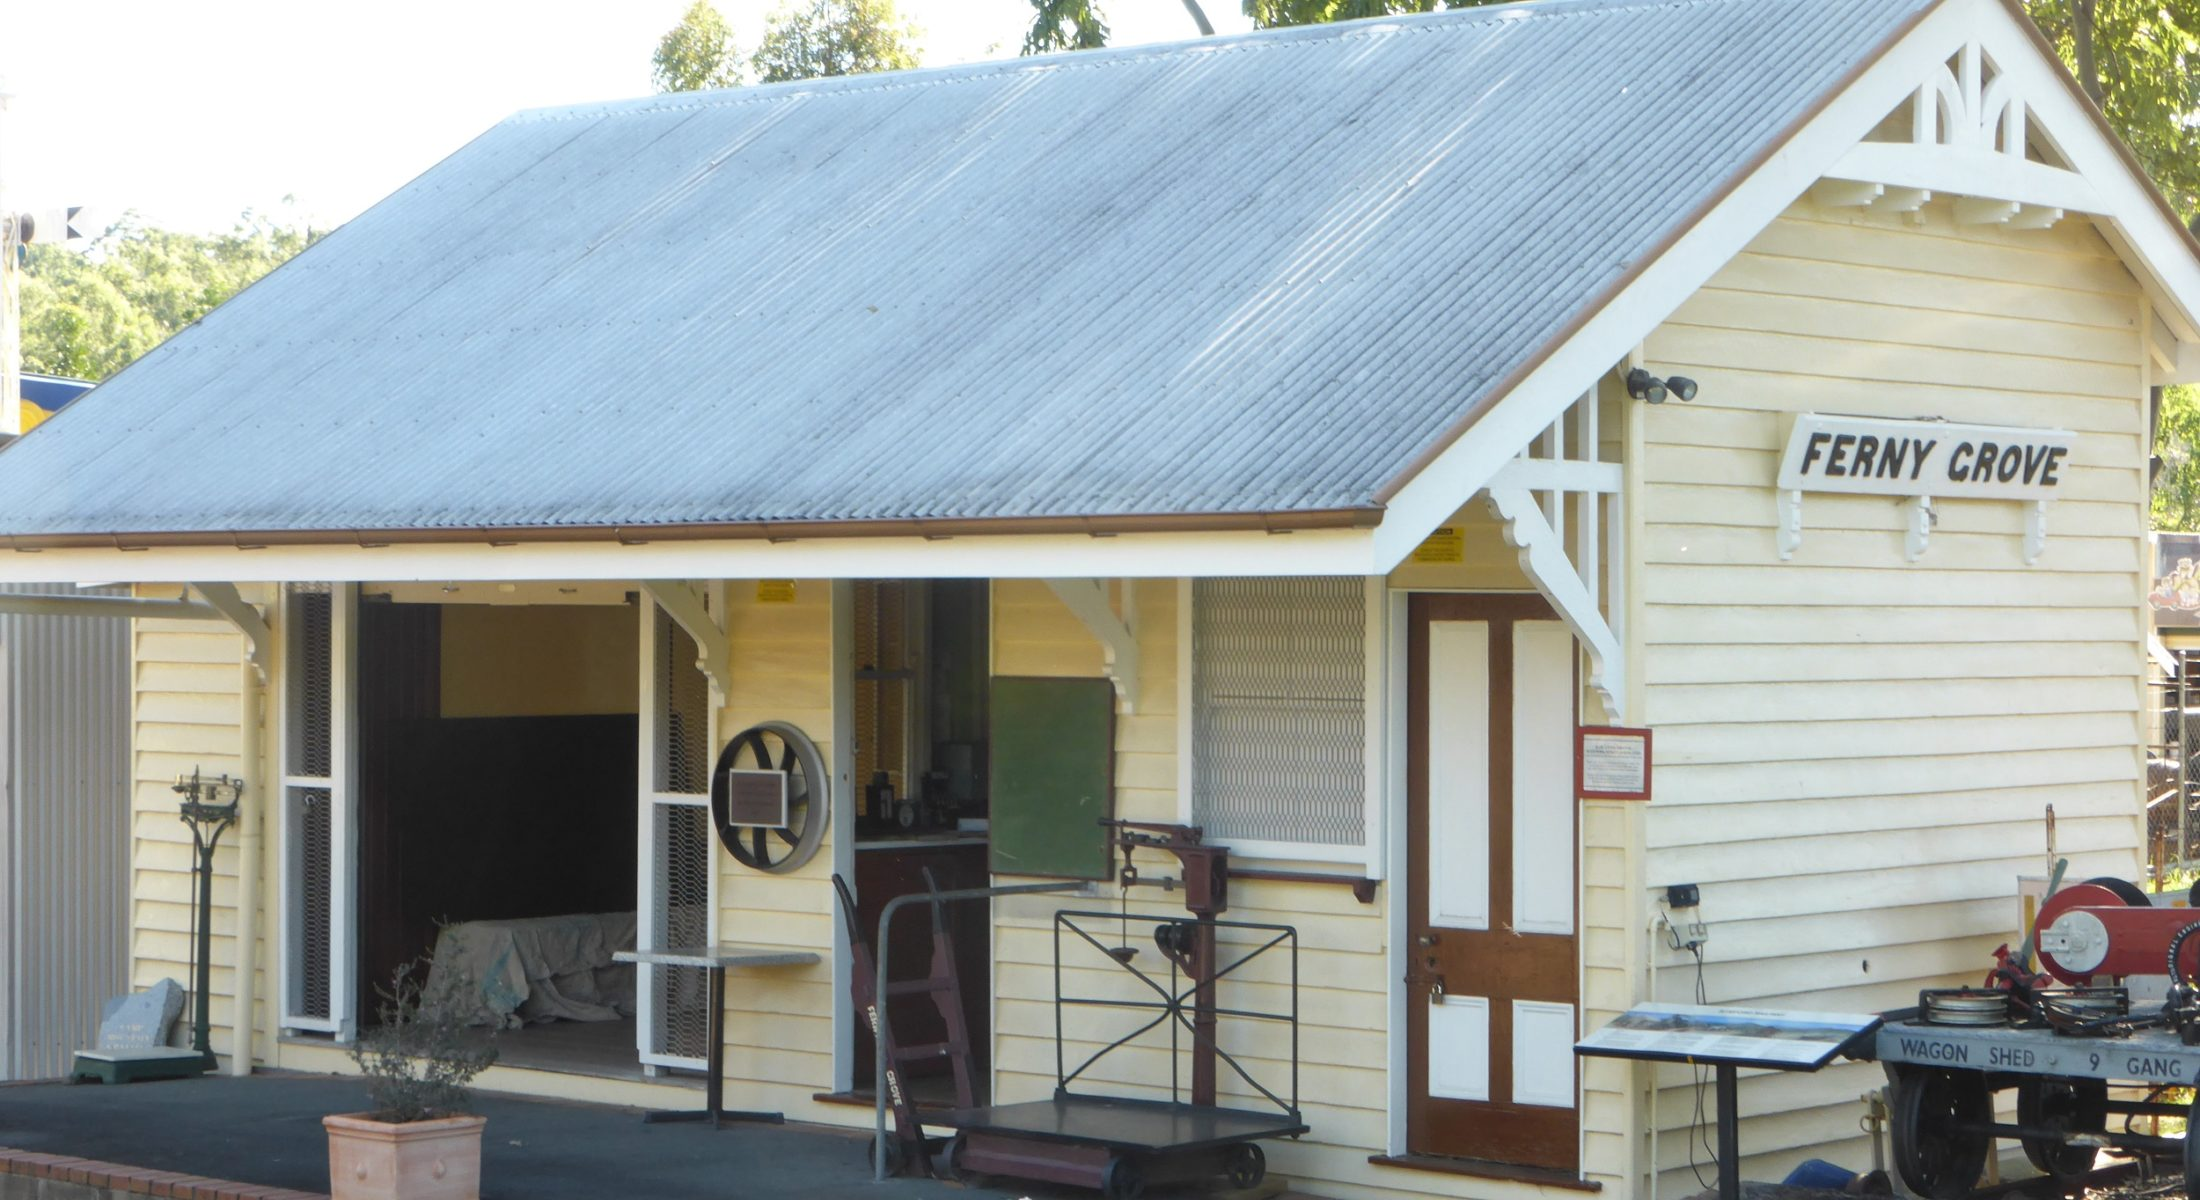 Old Ferny Grove Station Samford Museum Moreton Bay Region